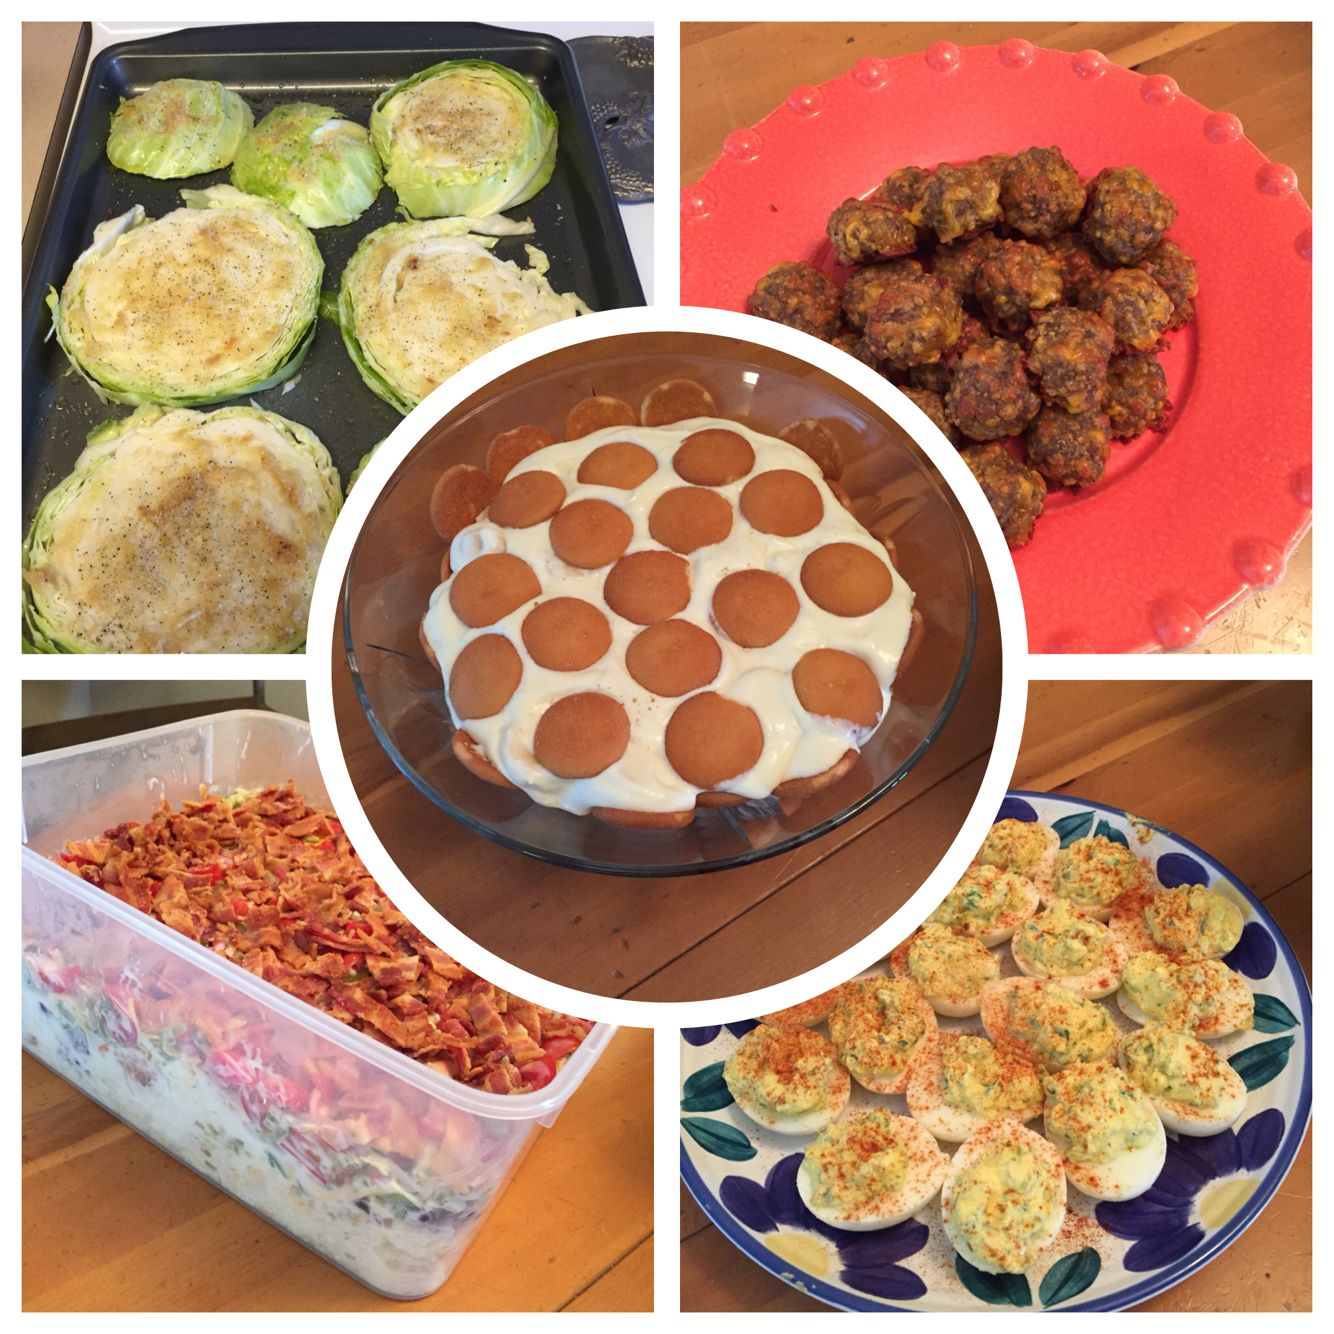 Cabbage Steaks, sausage balls, deviled eggs, cornbread salad, banana pudding....yummy!